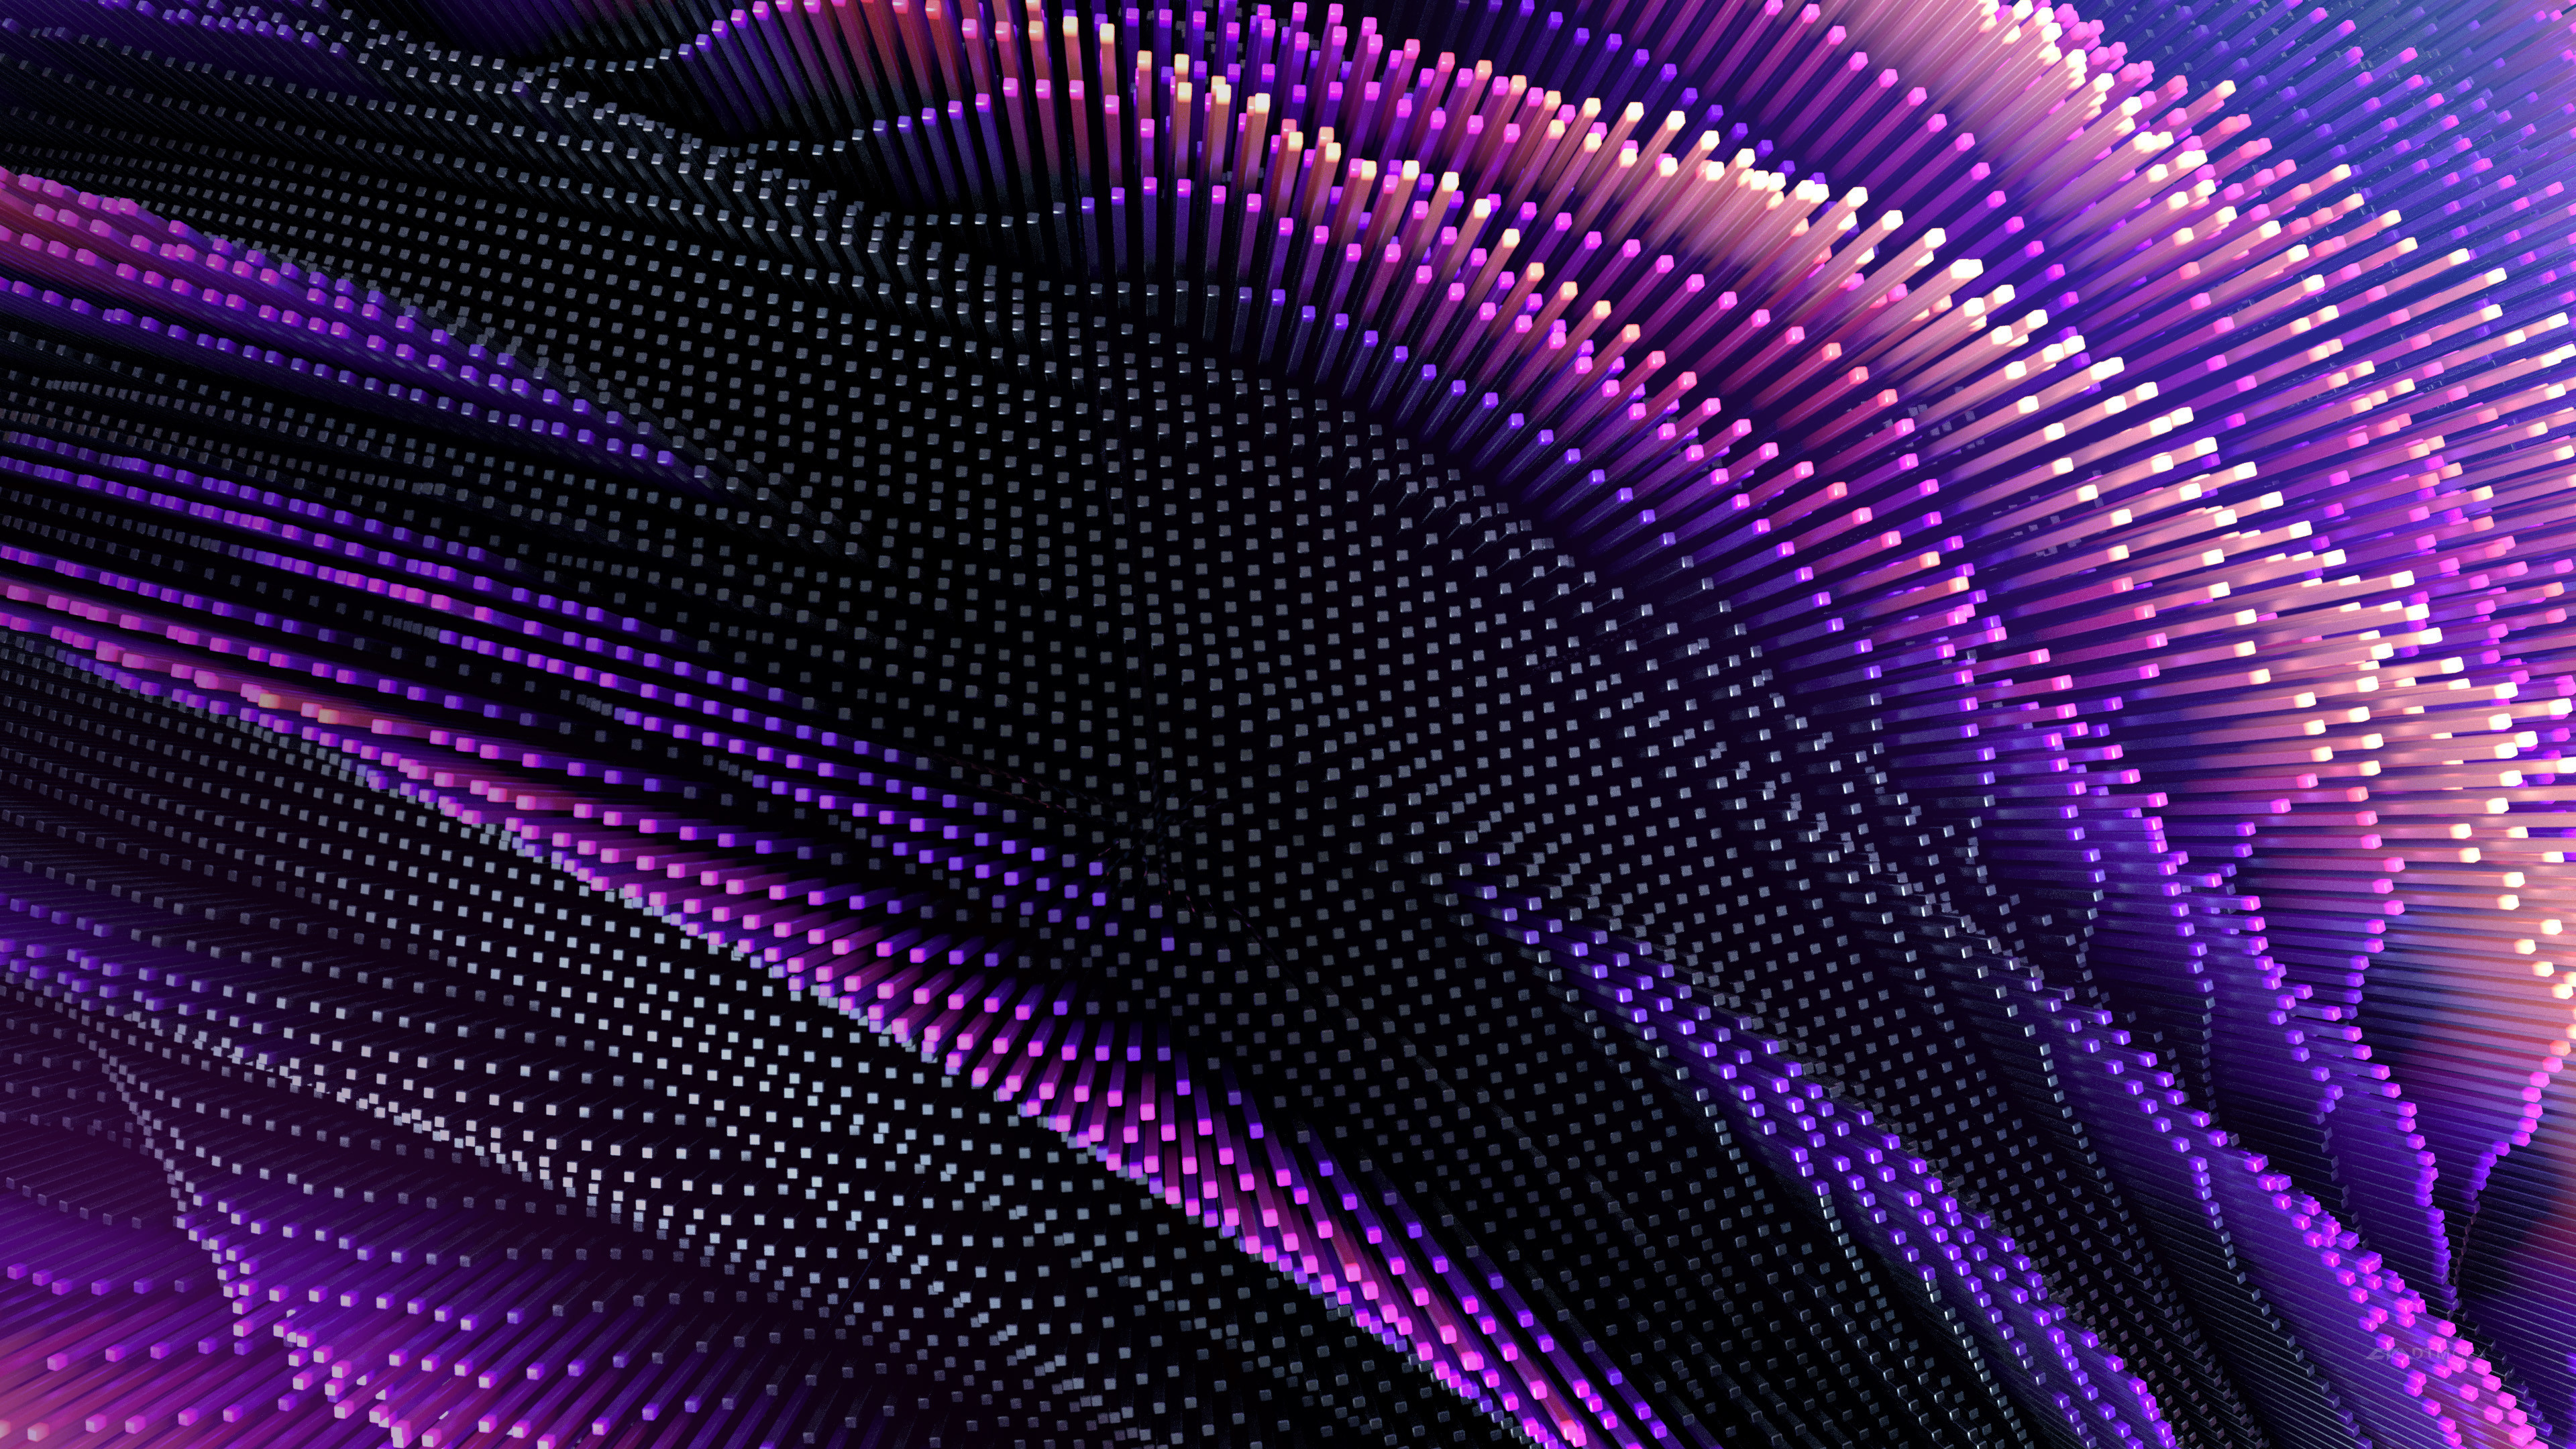 Purple Abstract Wallpaper 86 Pictures